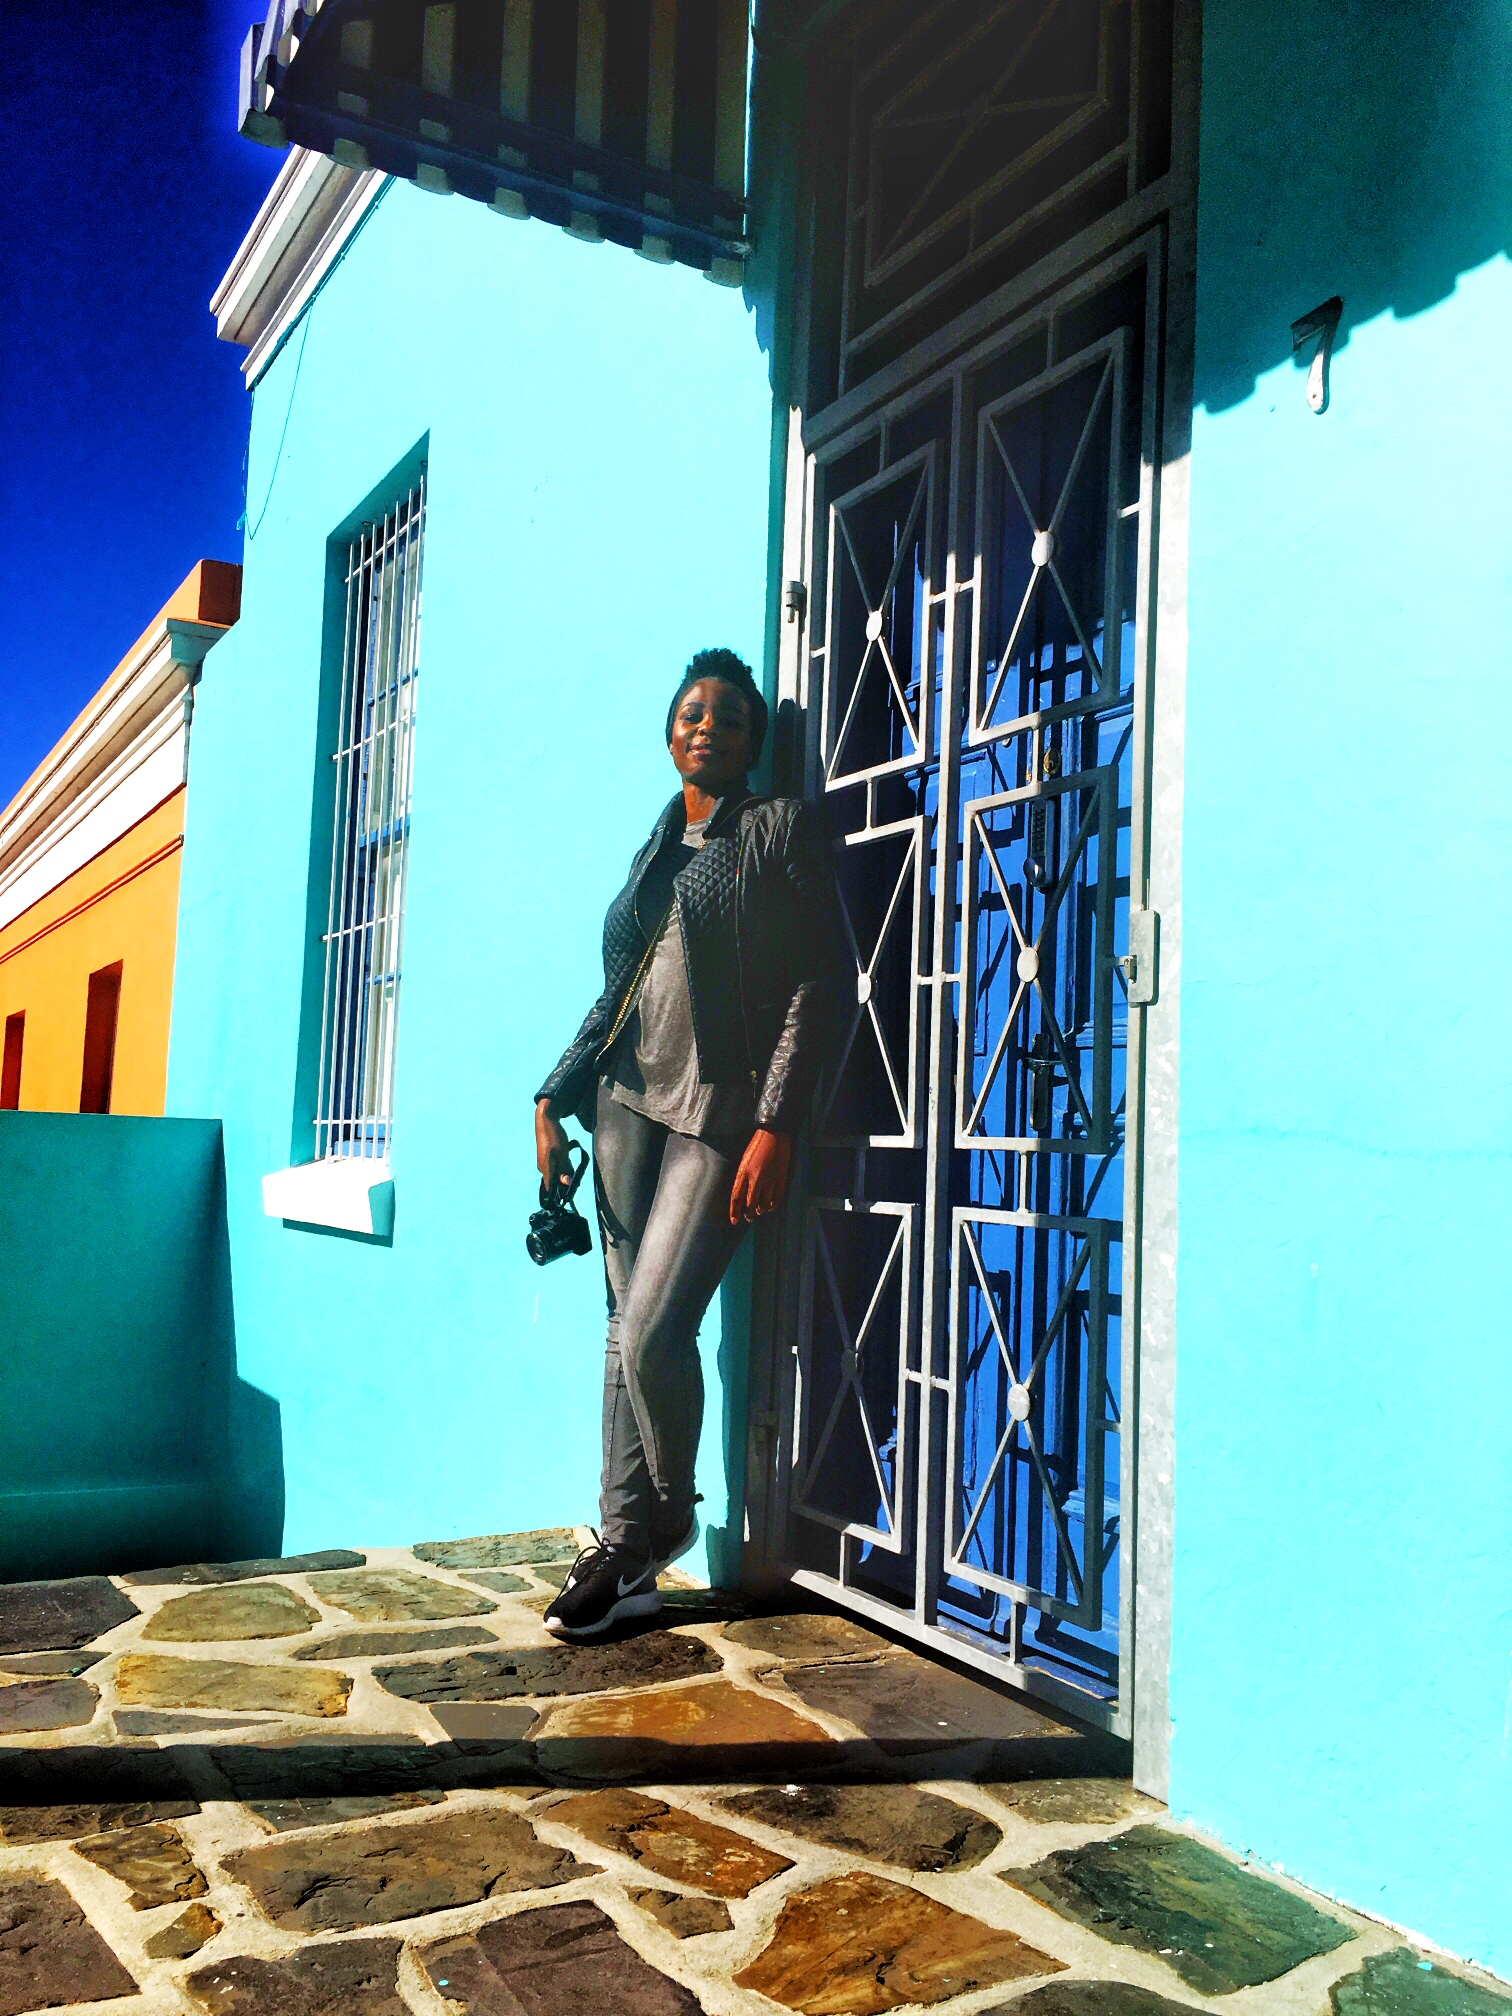 bo kaap travel guide